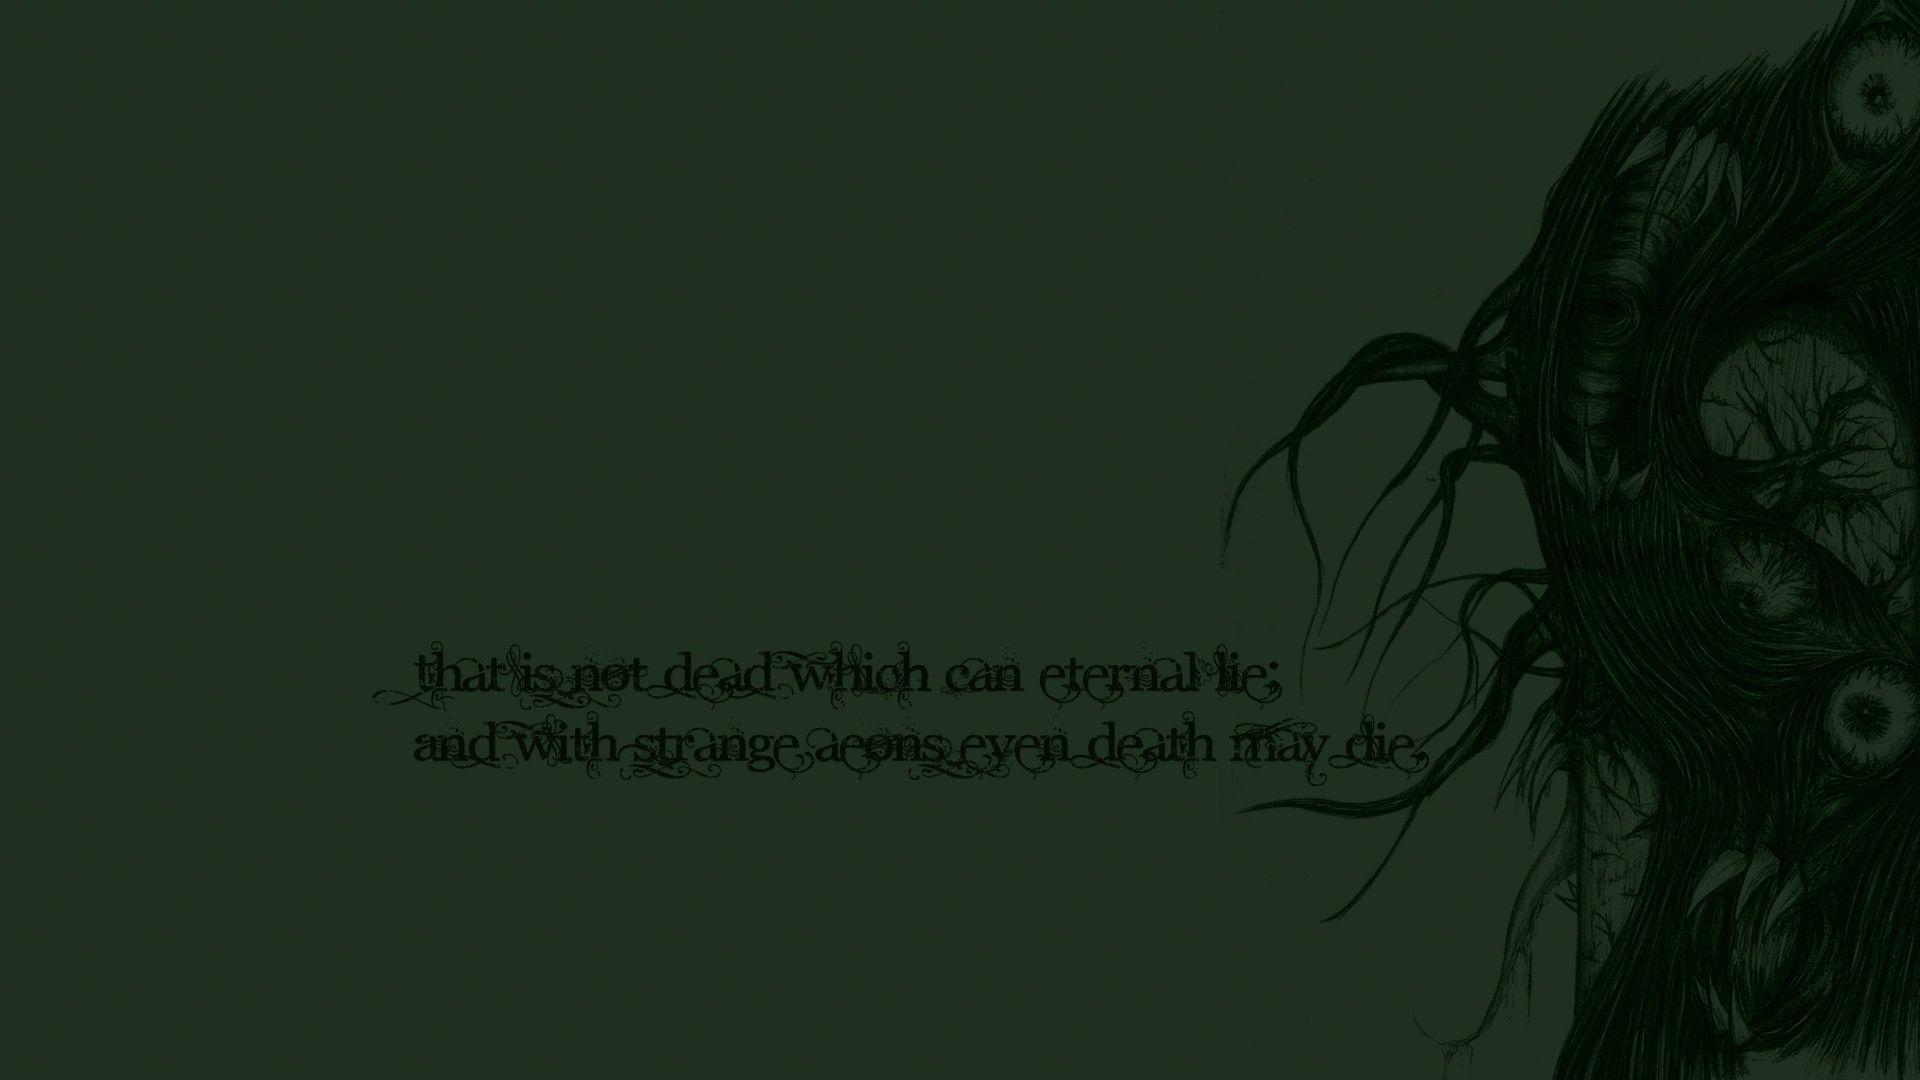 Hp Wallpapers Hd: The Image Of Cthulhu Hp Lovecraft Fresh Hd